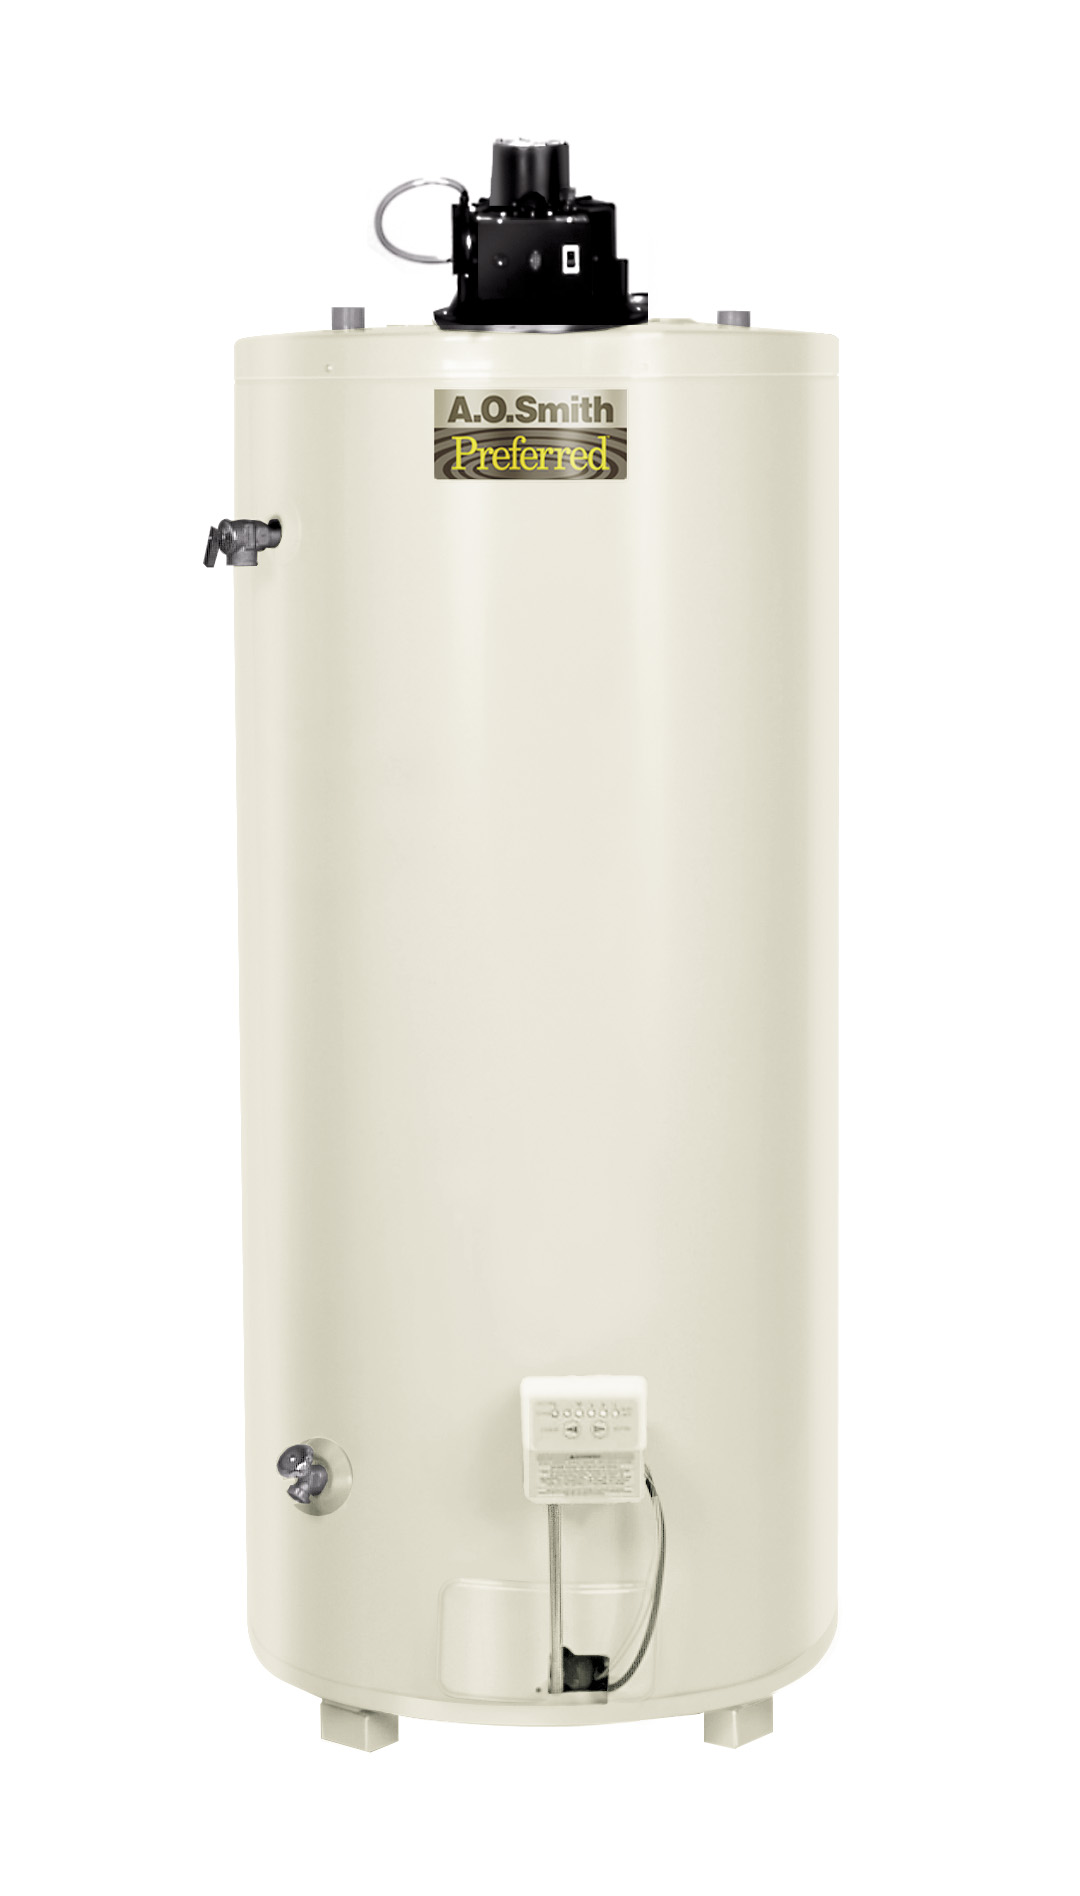 "AO SMITH BTF-80: 74-GALLON, 76,500 BTU, 4"" VENT, POWER VENT SINGLE FLUE, NATURAL GAS WATER HEATER, CONSERVATIONIST"